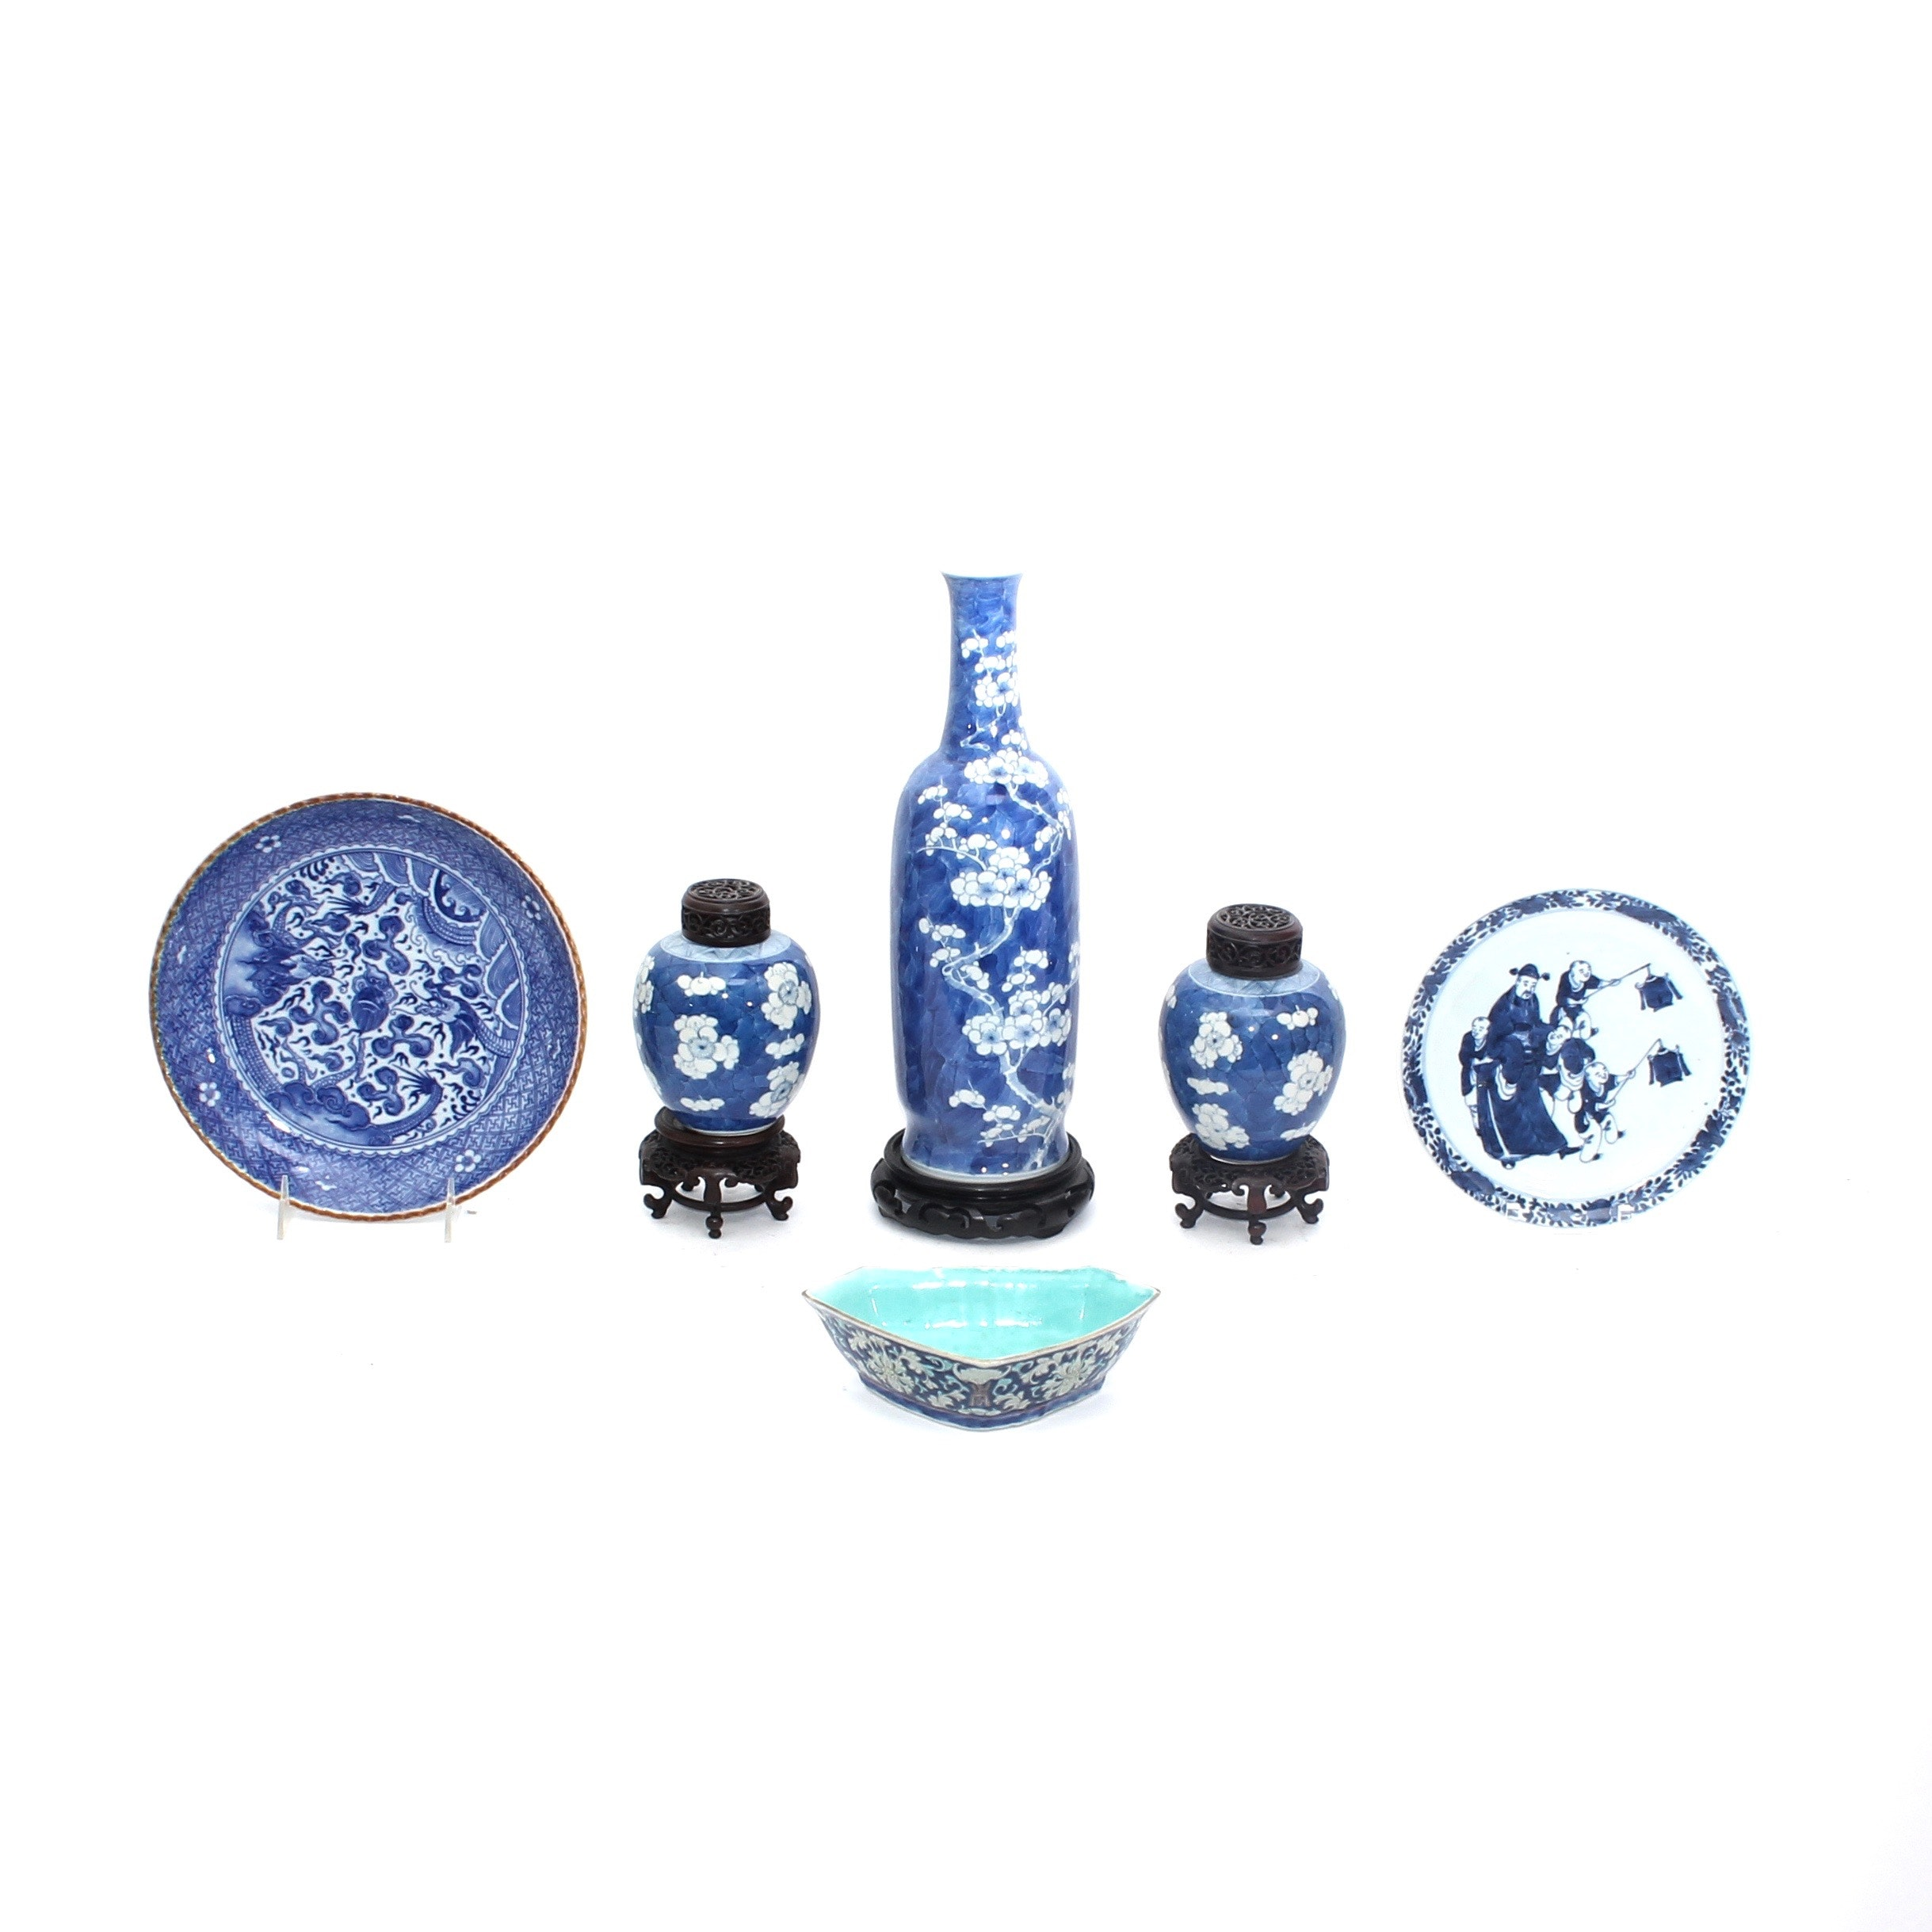 Blue and White Chinese Porcelain Decor